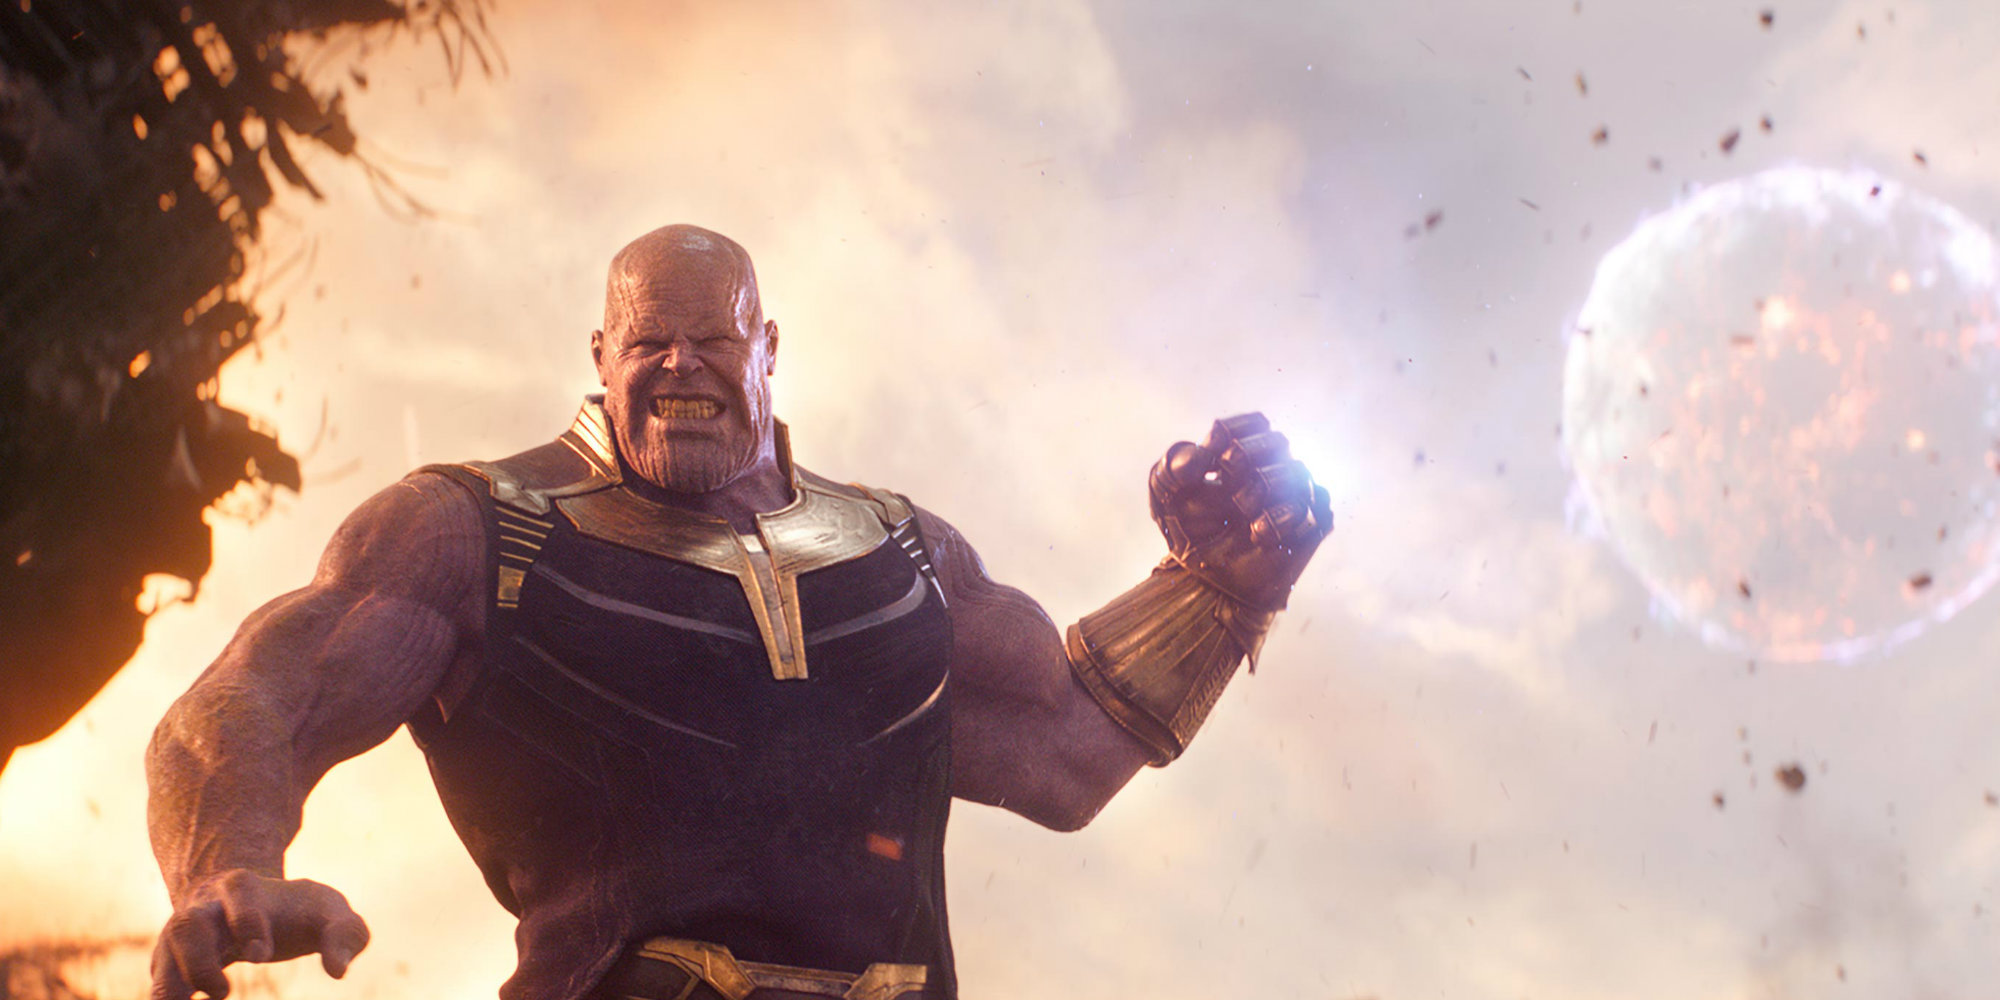 Thanos Throws a Moon in New Avengers: Infinity War Images